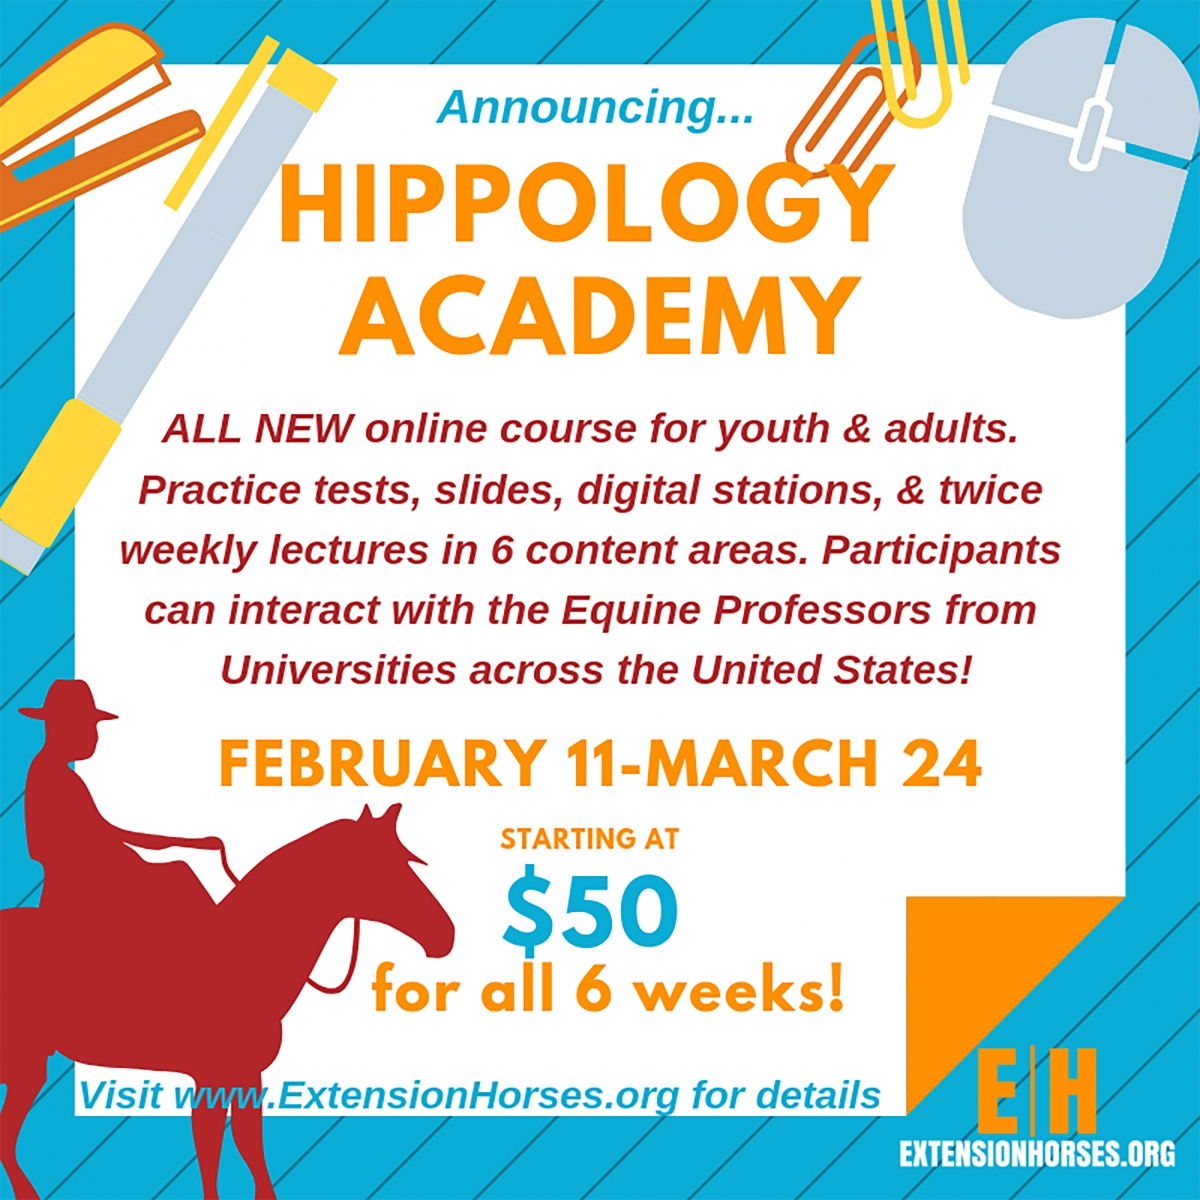 Hippology Academy Flyer. Links to larger image.